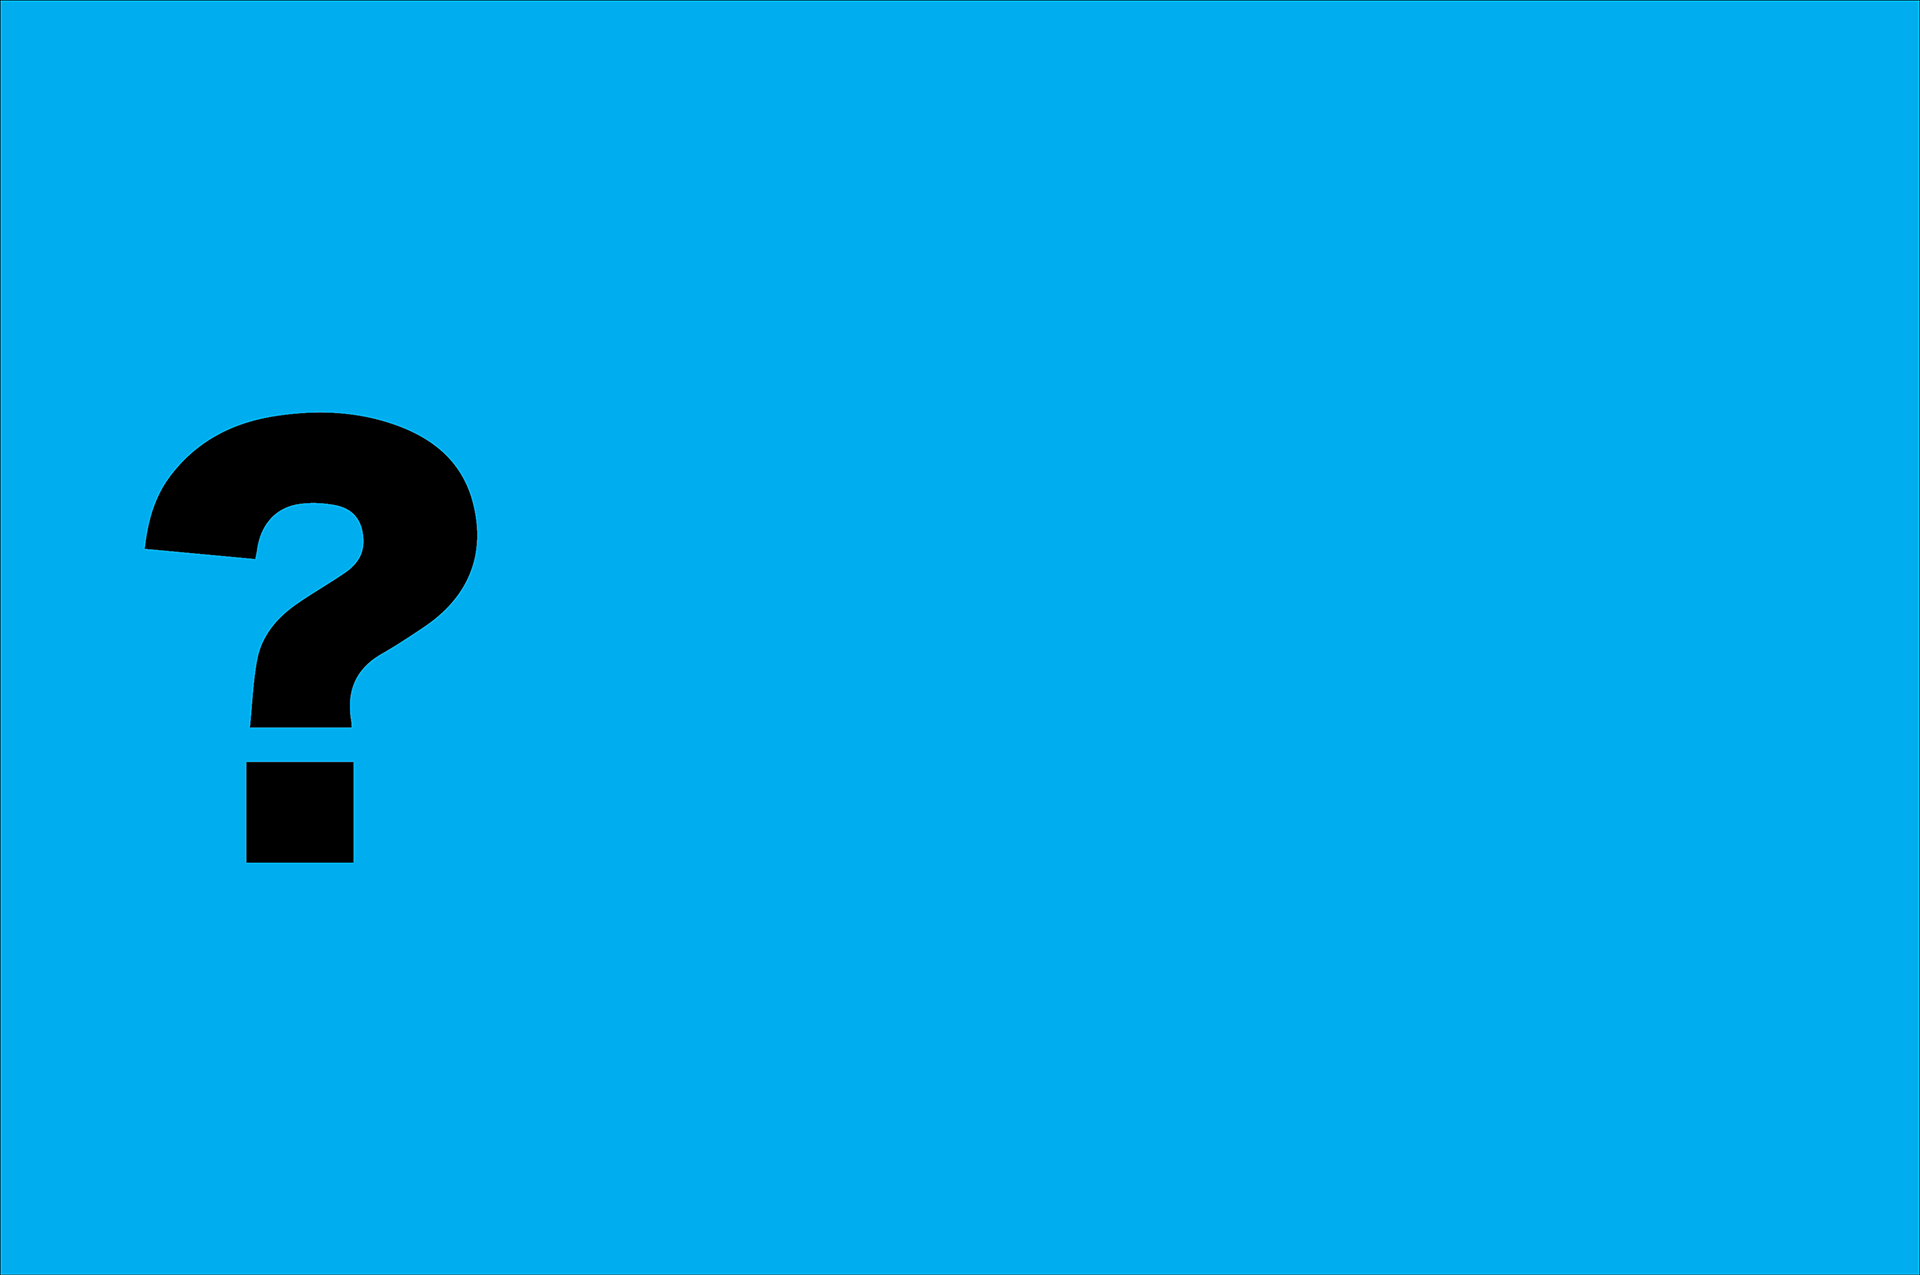 Banner, blue background with a large question mark.